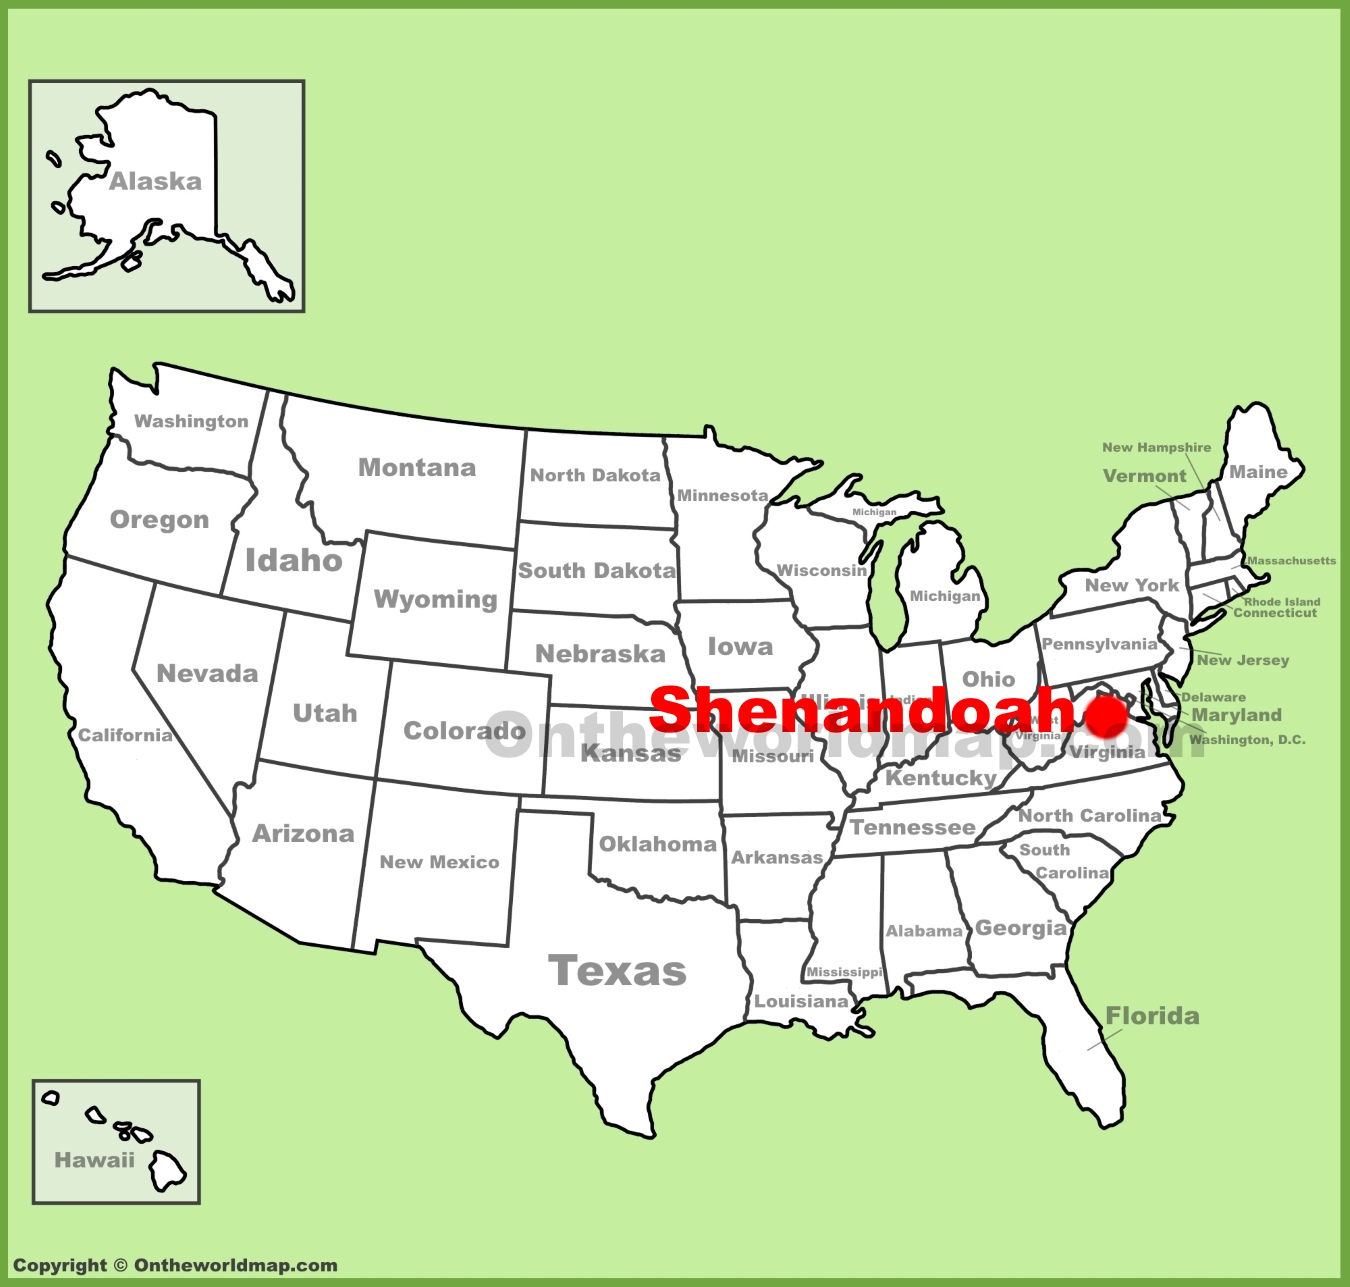 Shenandoah National Park location on the US Map